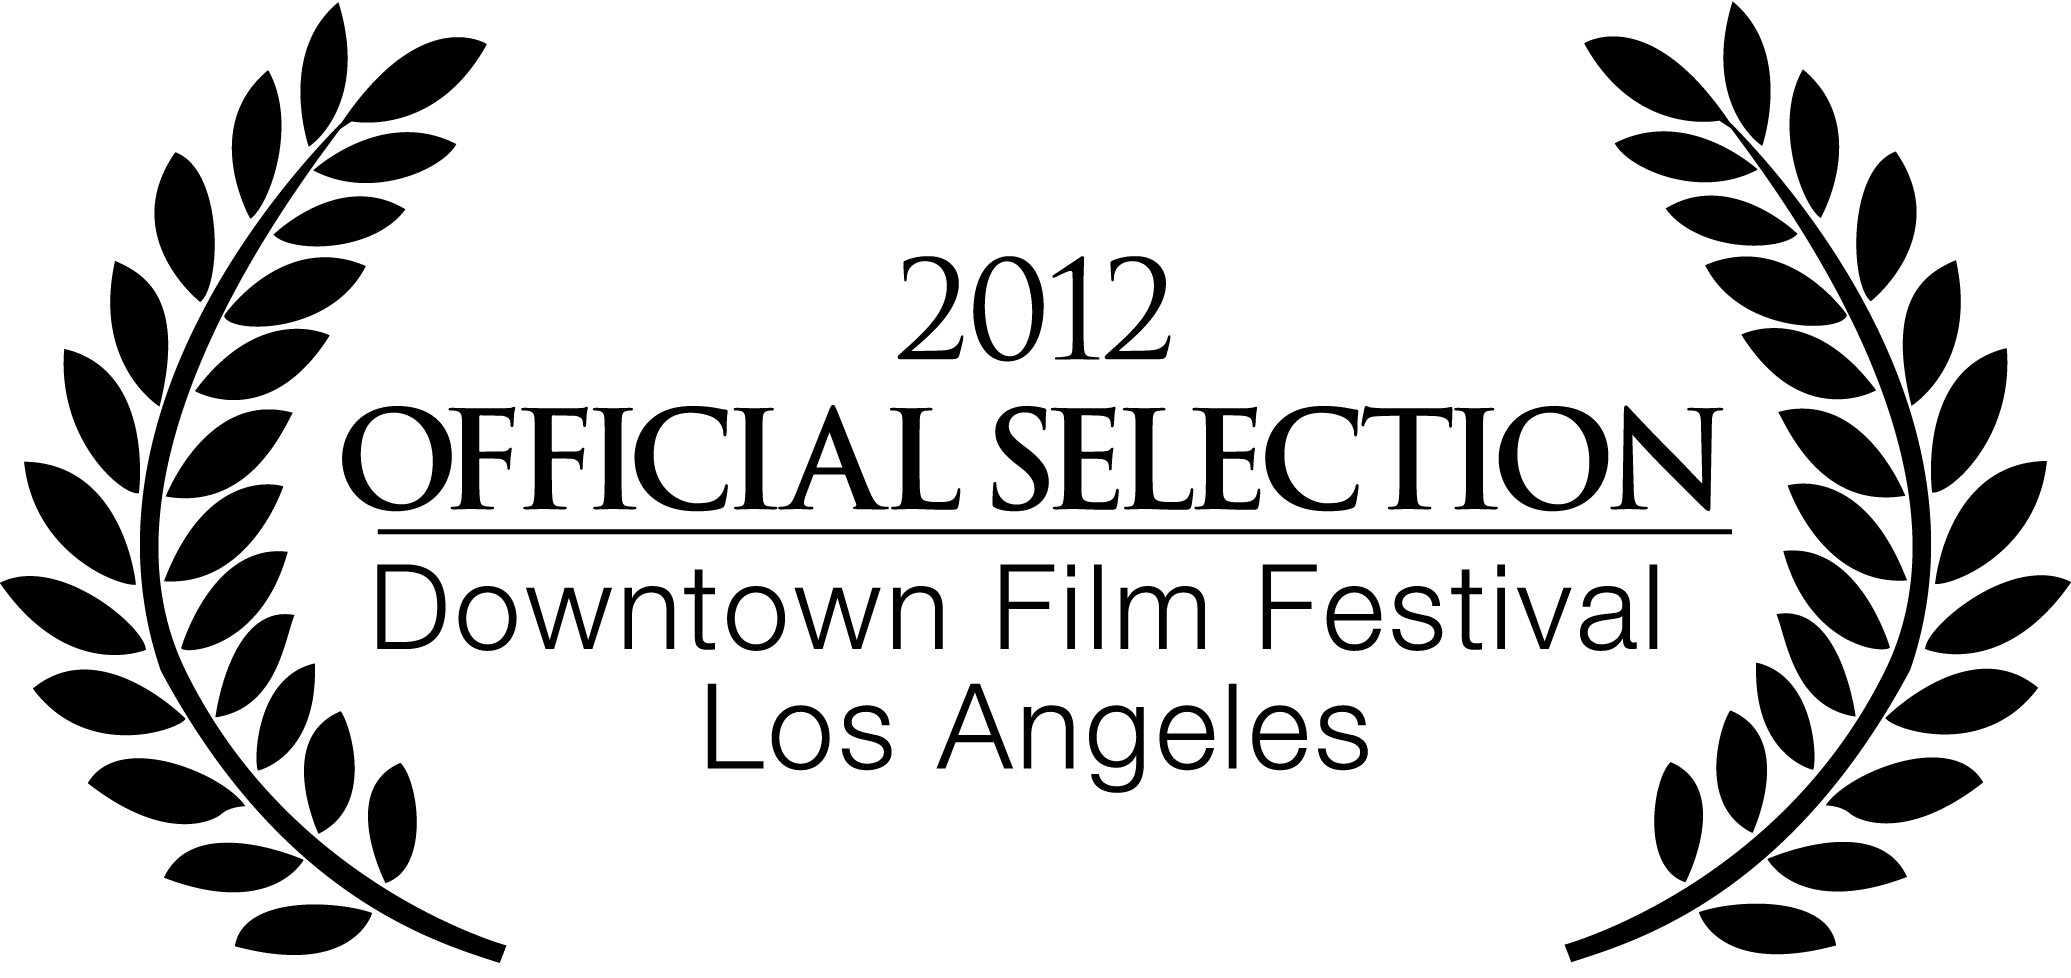 Award: Best Los Angeles Film